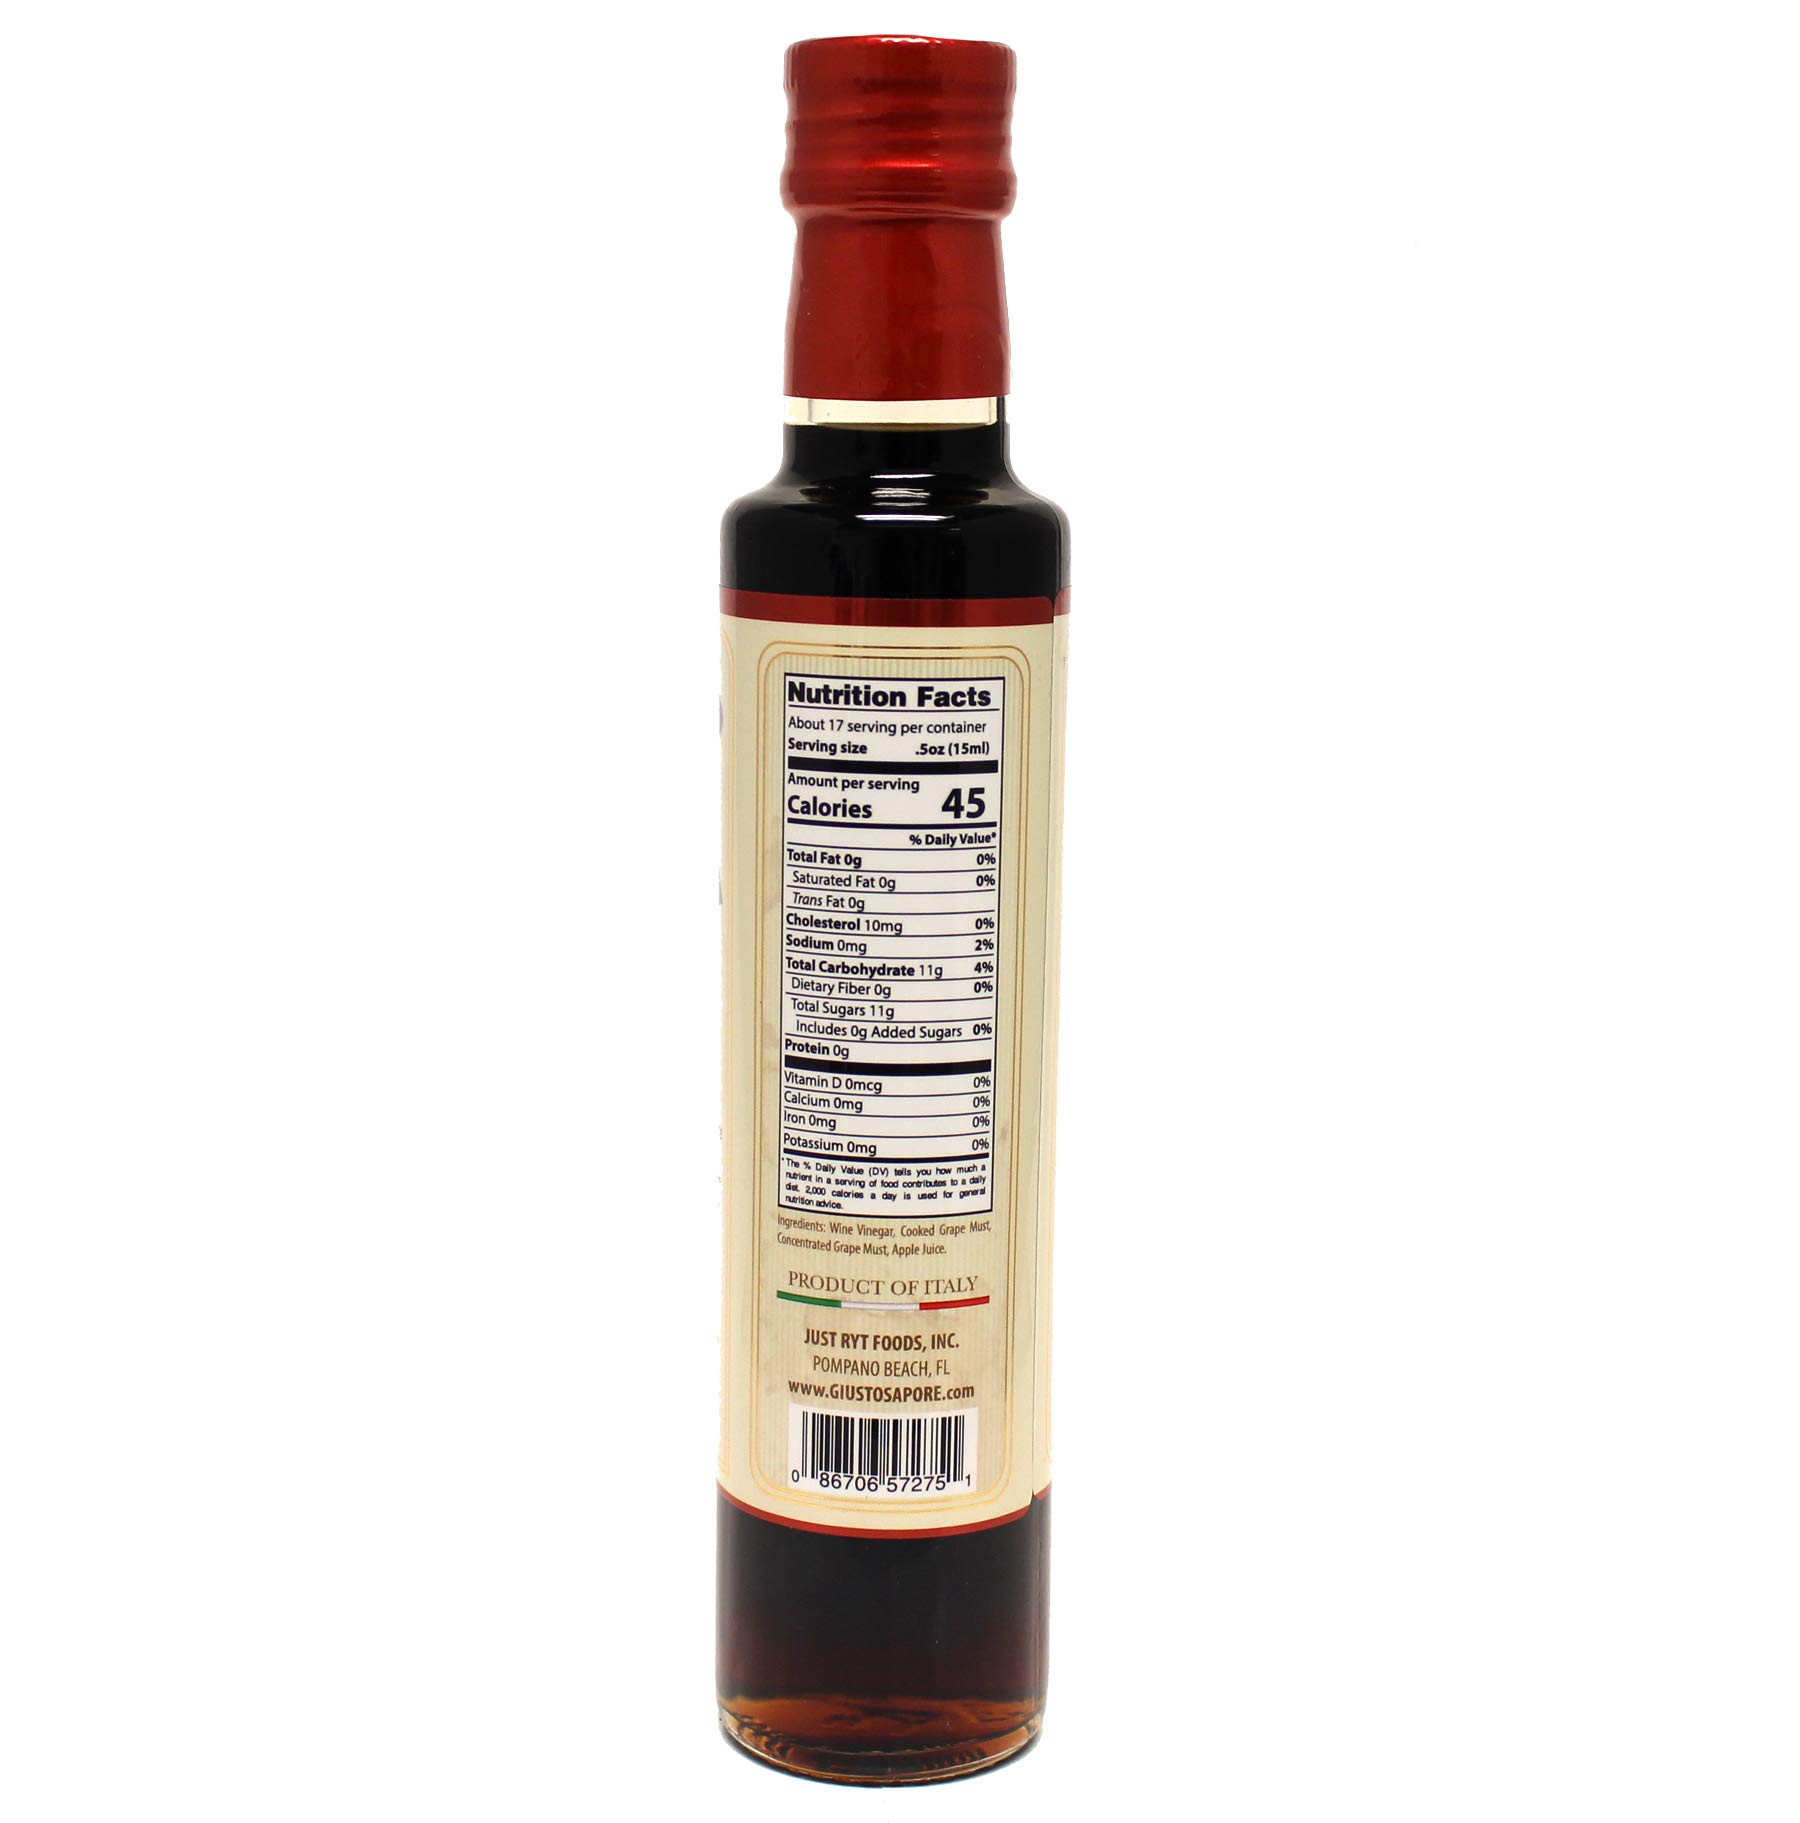 Giusto Sapore All Natural Balsamic Vinegar of Modena P.G.I. - 8.5oz - Made with Real Fruit Puree - Imported from Italy and Family Owned 3 APPLE ITALIAN BALSAMIC VINEGAR: Whether you're looking for personalized gifts for the Italian lovers in your life or you're looking for delicious Italian apple balsamic vinegar. With these balsamic vinegars, you'll have 17 servings of premium gourmet Italian vinegar ready to go! QUALITY: This is some of the best superior quality Italian fruit infused balsamic vinegars on the market today and probably the last one you will need to ever try! Any product which is not made in the legal area of Modena, under specific European Union production regulations cannot receive the P.G.I certification. DELICIOUS TASTE: Giusto Sapore's Italian Apple Balsamic Vinegars yields a sweeter and less pungent taste as well as more aroma and flavor. Balsamic fruit vinegars blend real fruit puree with white wine vinegar and cooked grape must to create all natural condiments bursting with flavor.